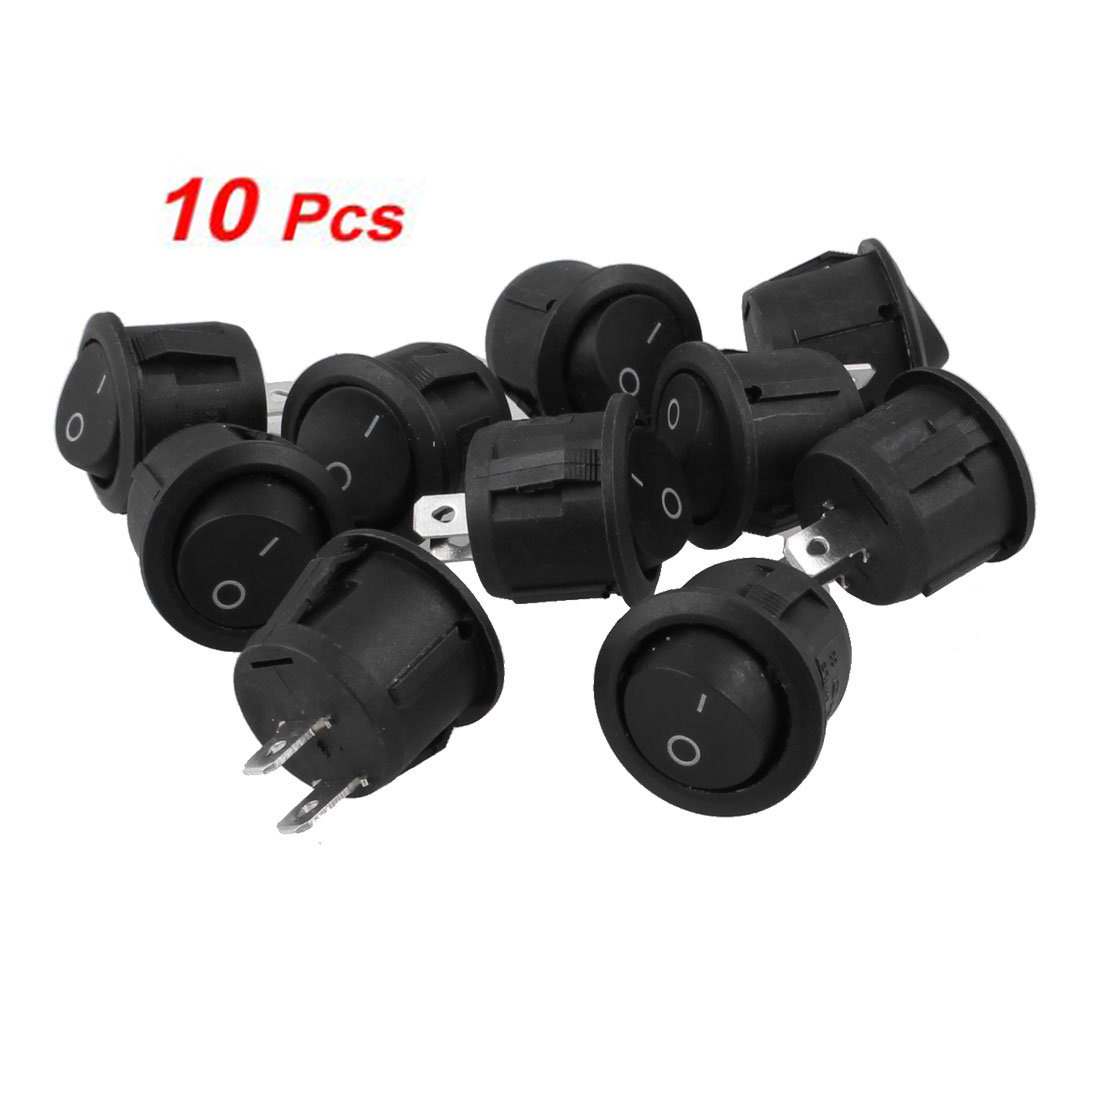 Promotion! 10Pcs AC 6A 10A 250V On Off Snap in SPST Round Boat Rocker Switch Black new 7 touch screen digitizer replacement fpc ctp 0700 066v7 1 tablet pc